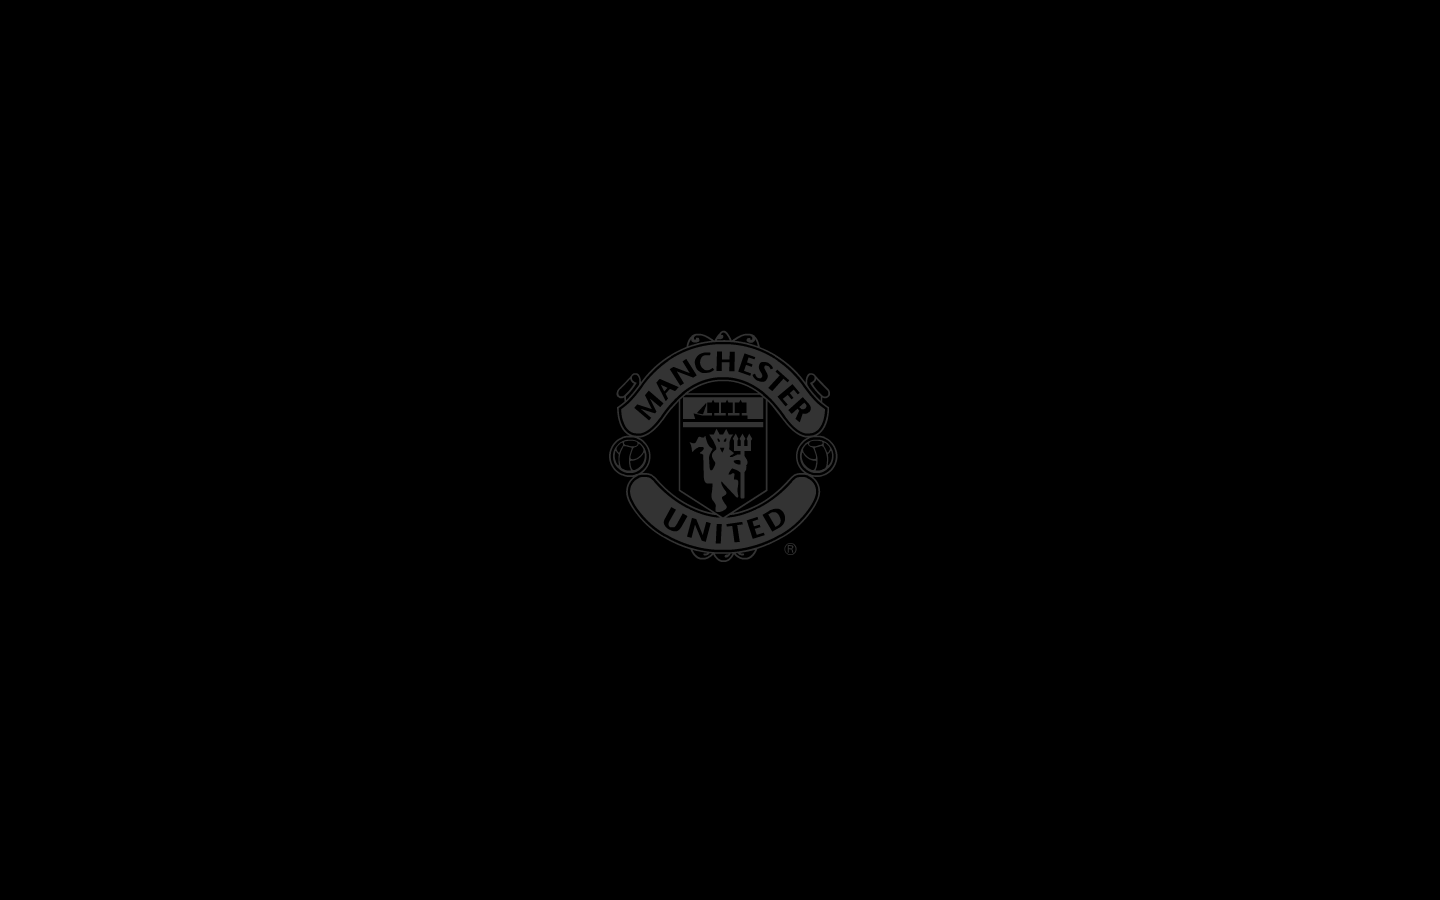 Pin By Vlad Osmanov On Mhfc Manchester United Wallpaper Manchester United Images Manchester United